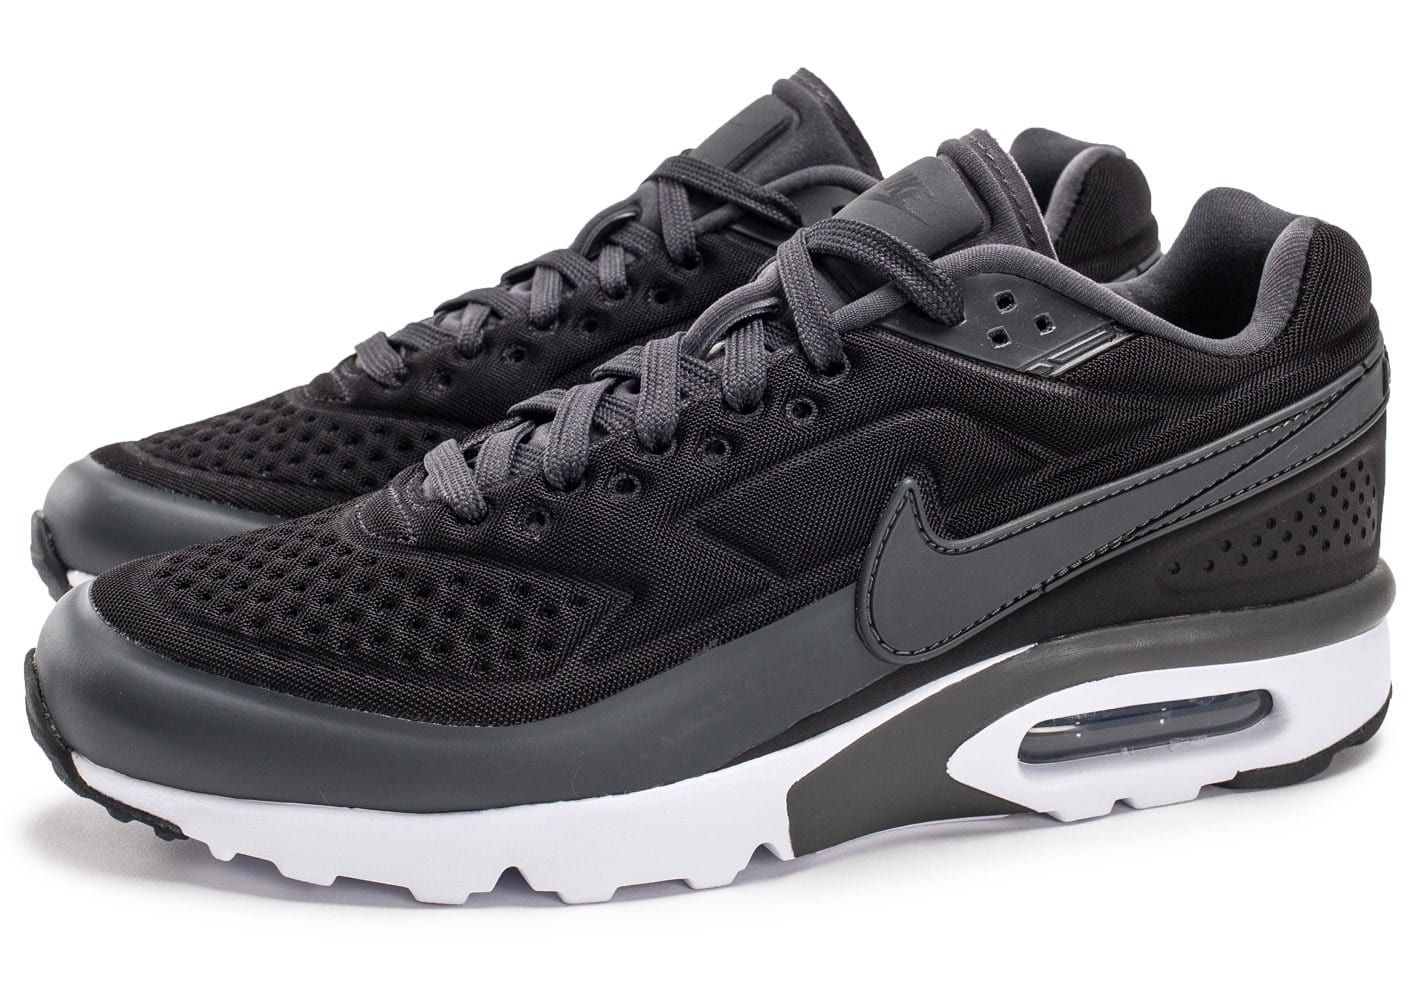 plus de photos 75013 dab24 Nike Air Max BW Ultra noir anthracite - Chaussures Baskets ...